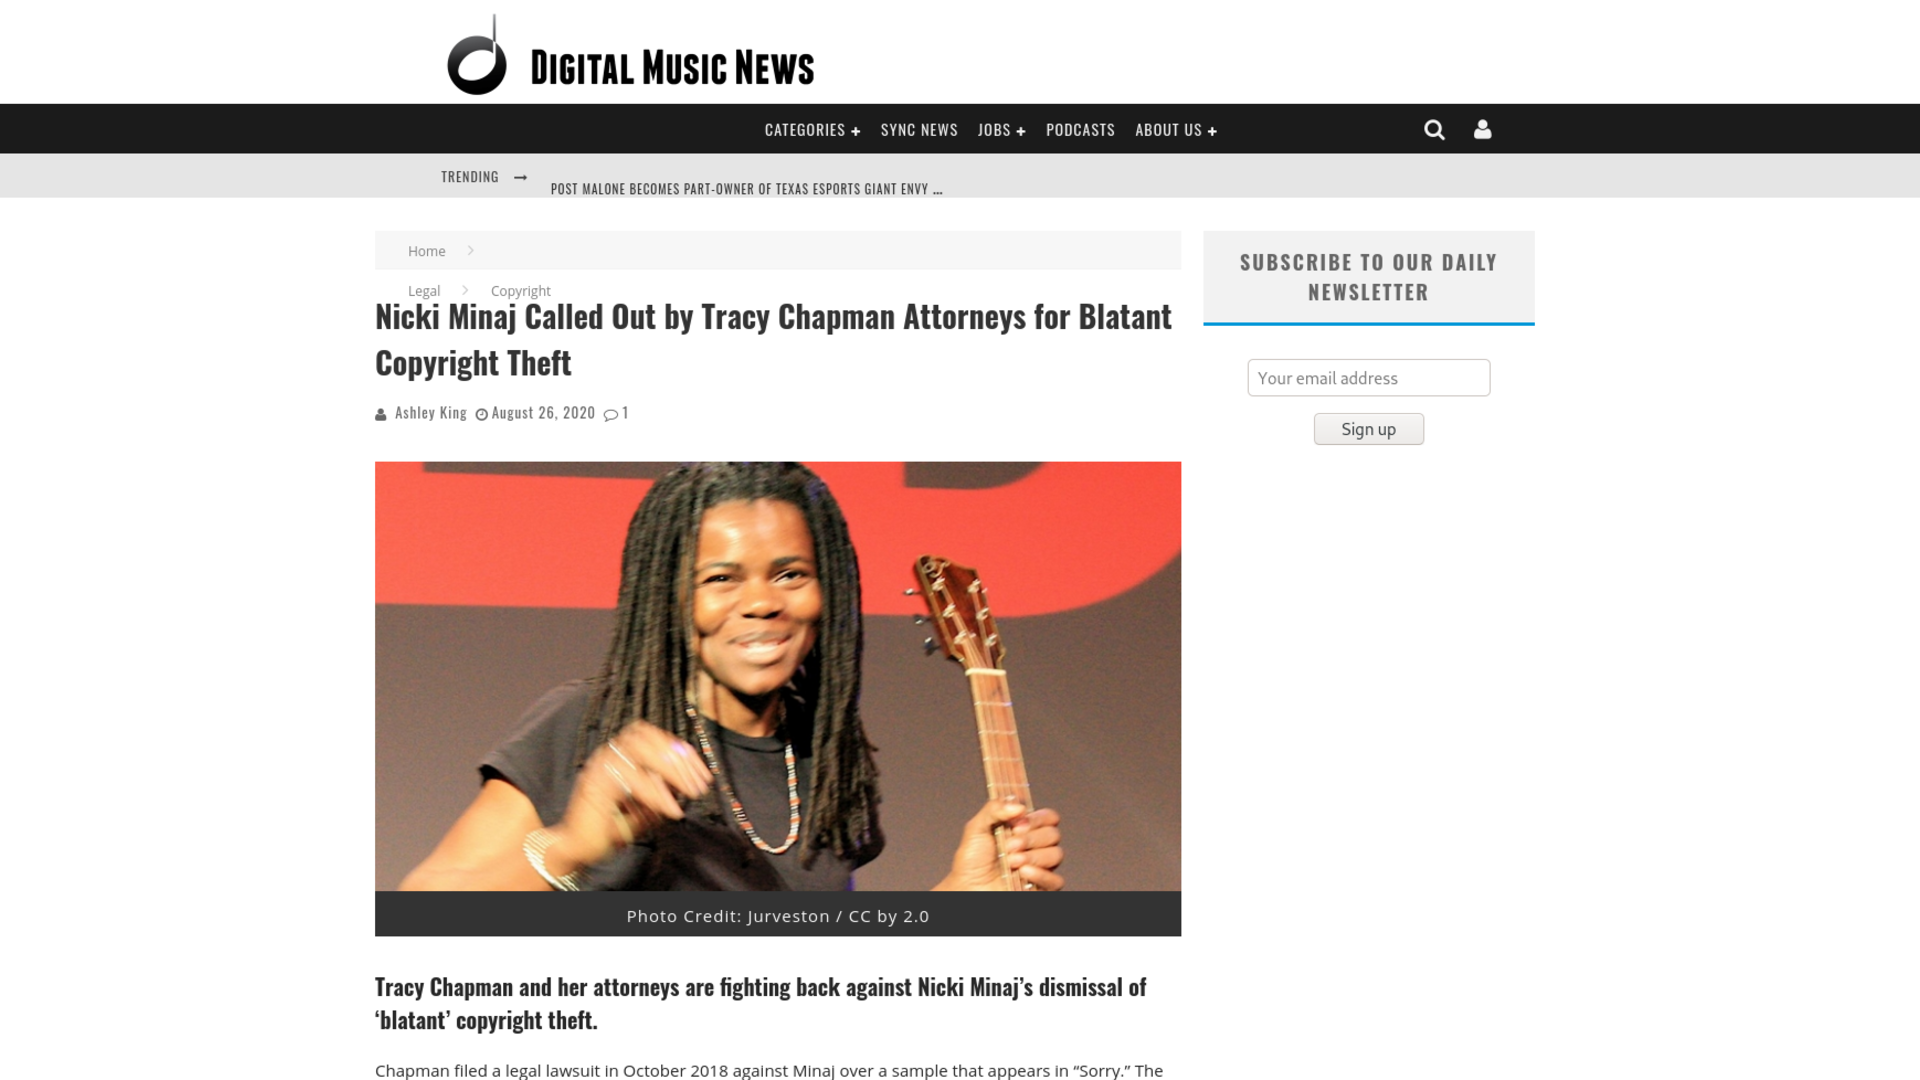 Fairness Rocks News Nicki Minaj Called Out by Tracy Chapman Attorneys for Blatant Copyright Theft